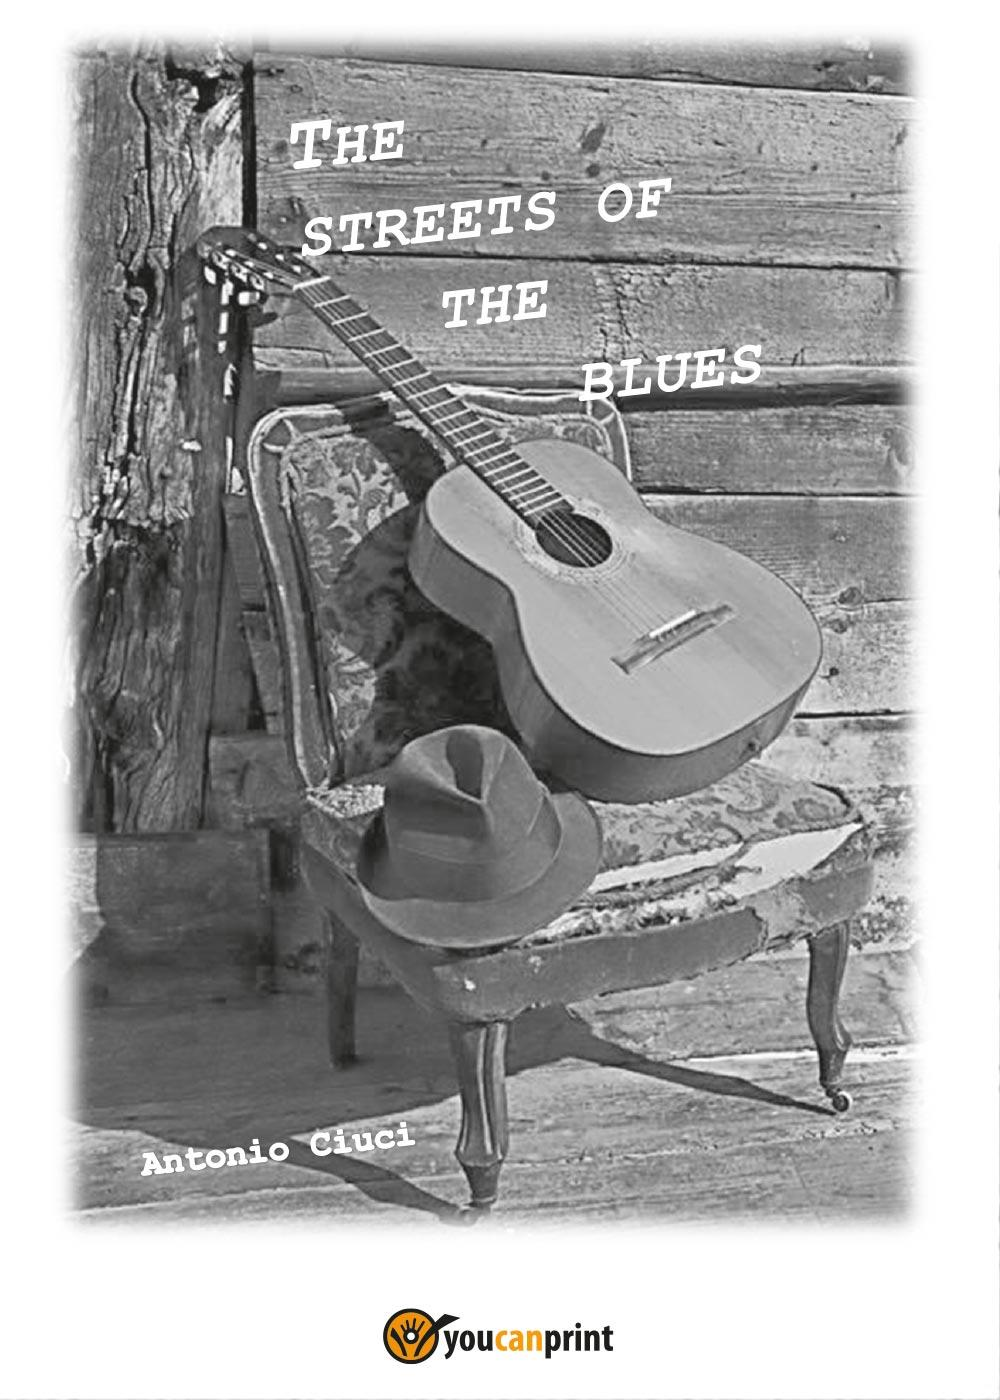 The streets of the blues